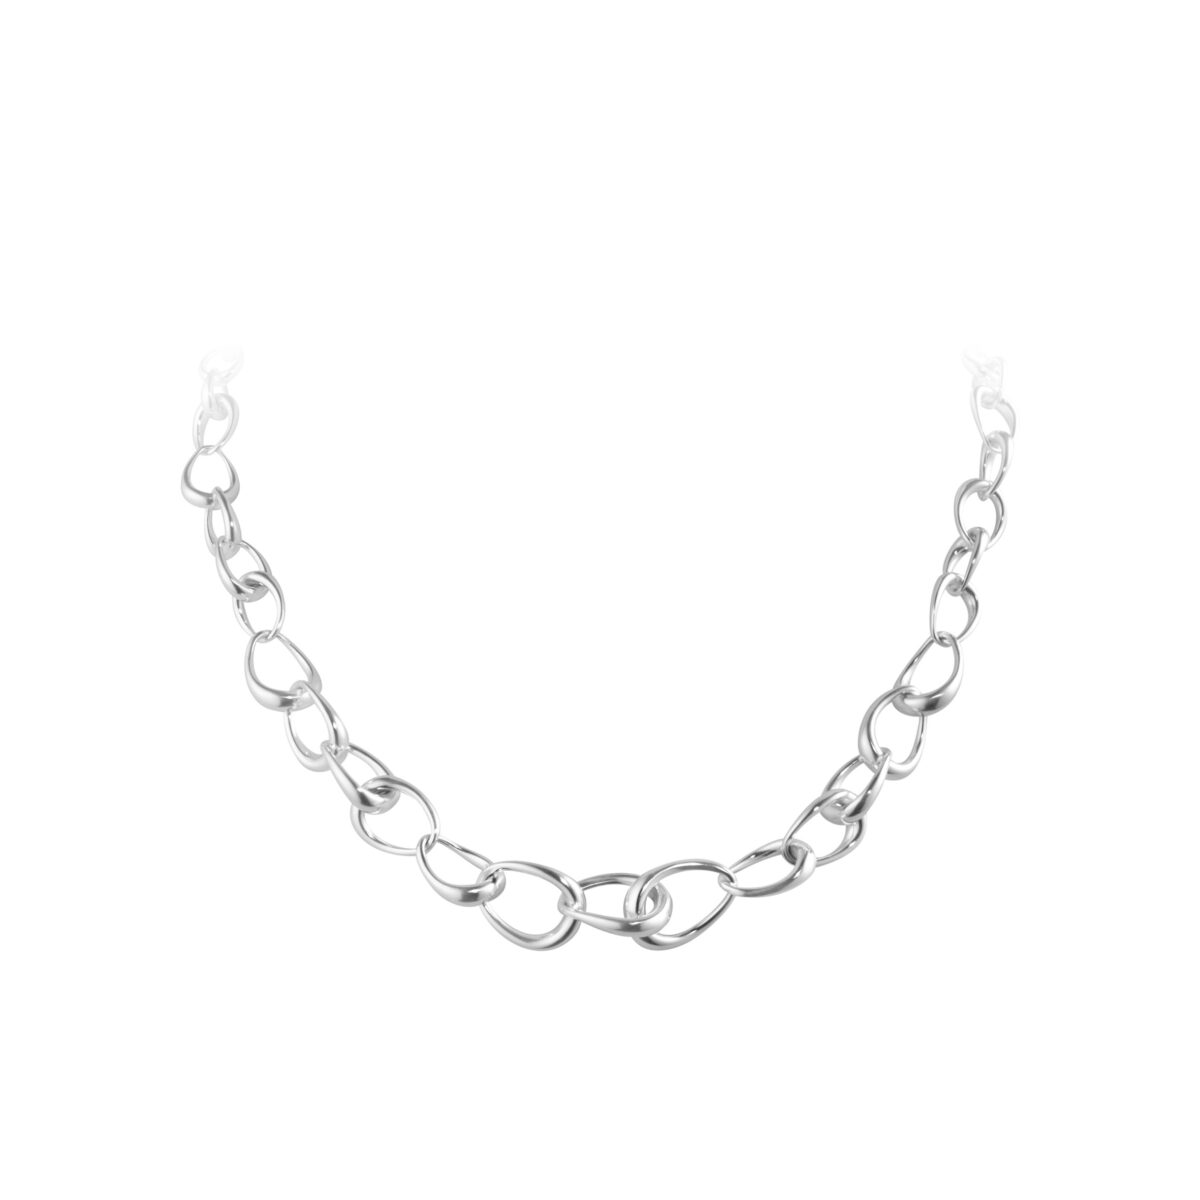 product/1/0/10012558_offspring_graduated_link_necklace_433_silver_jpg_max_3000x3000_423927.jpg